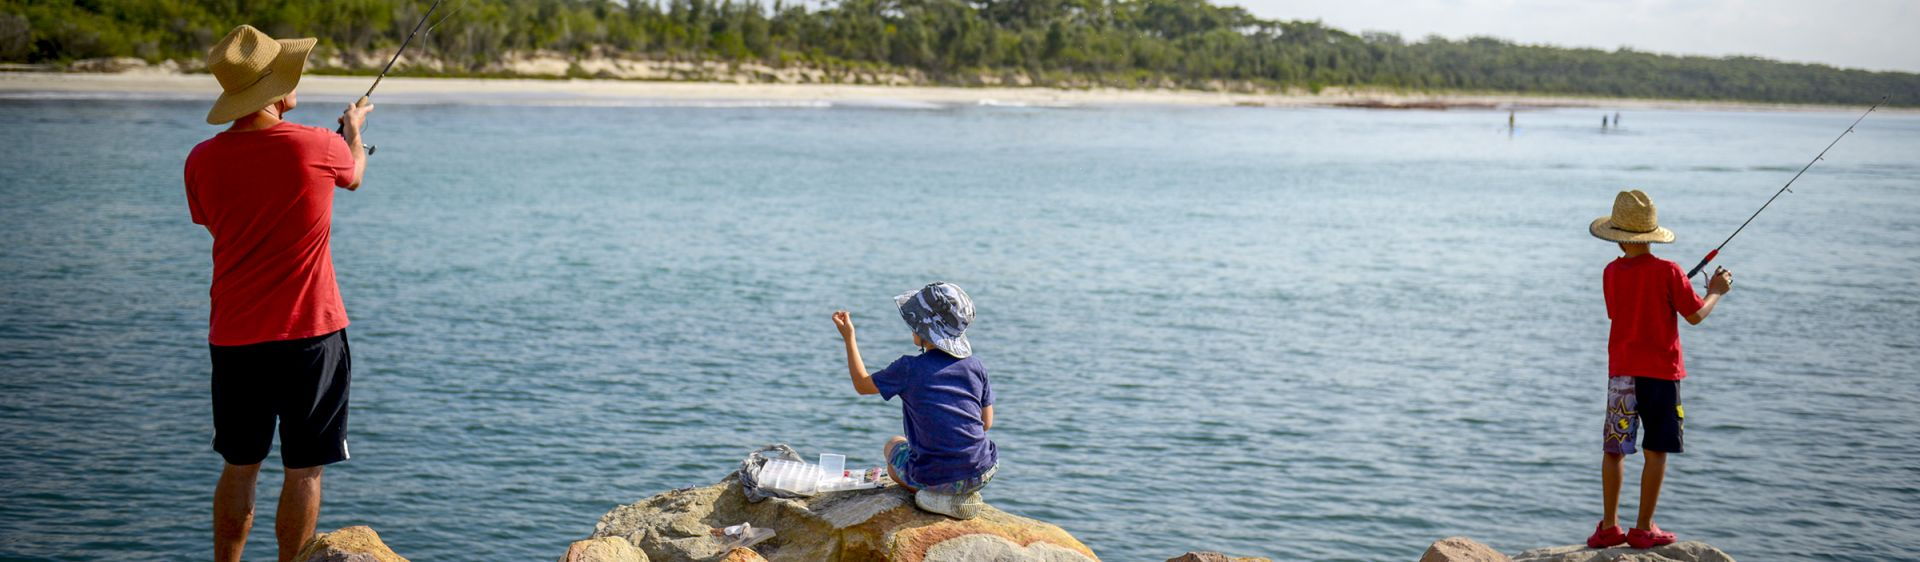 Fishing in Huskisson - Shoalhaven